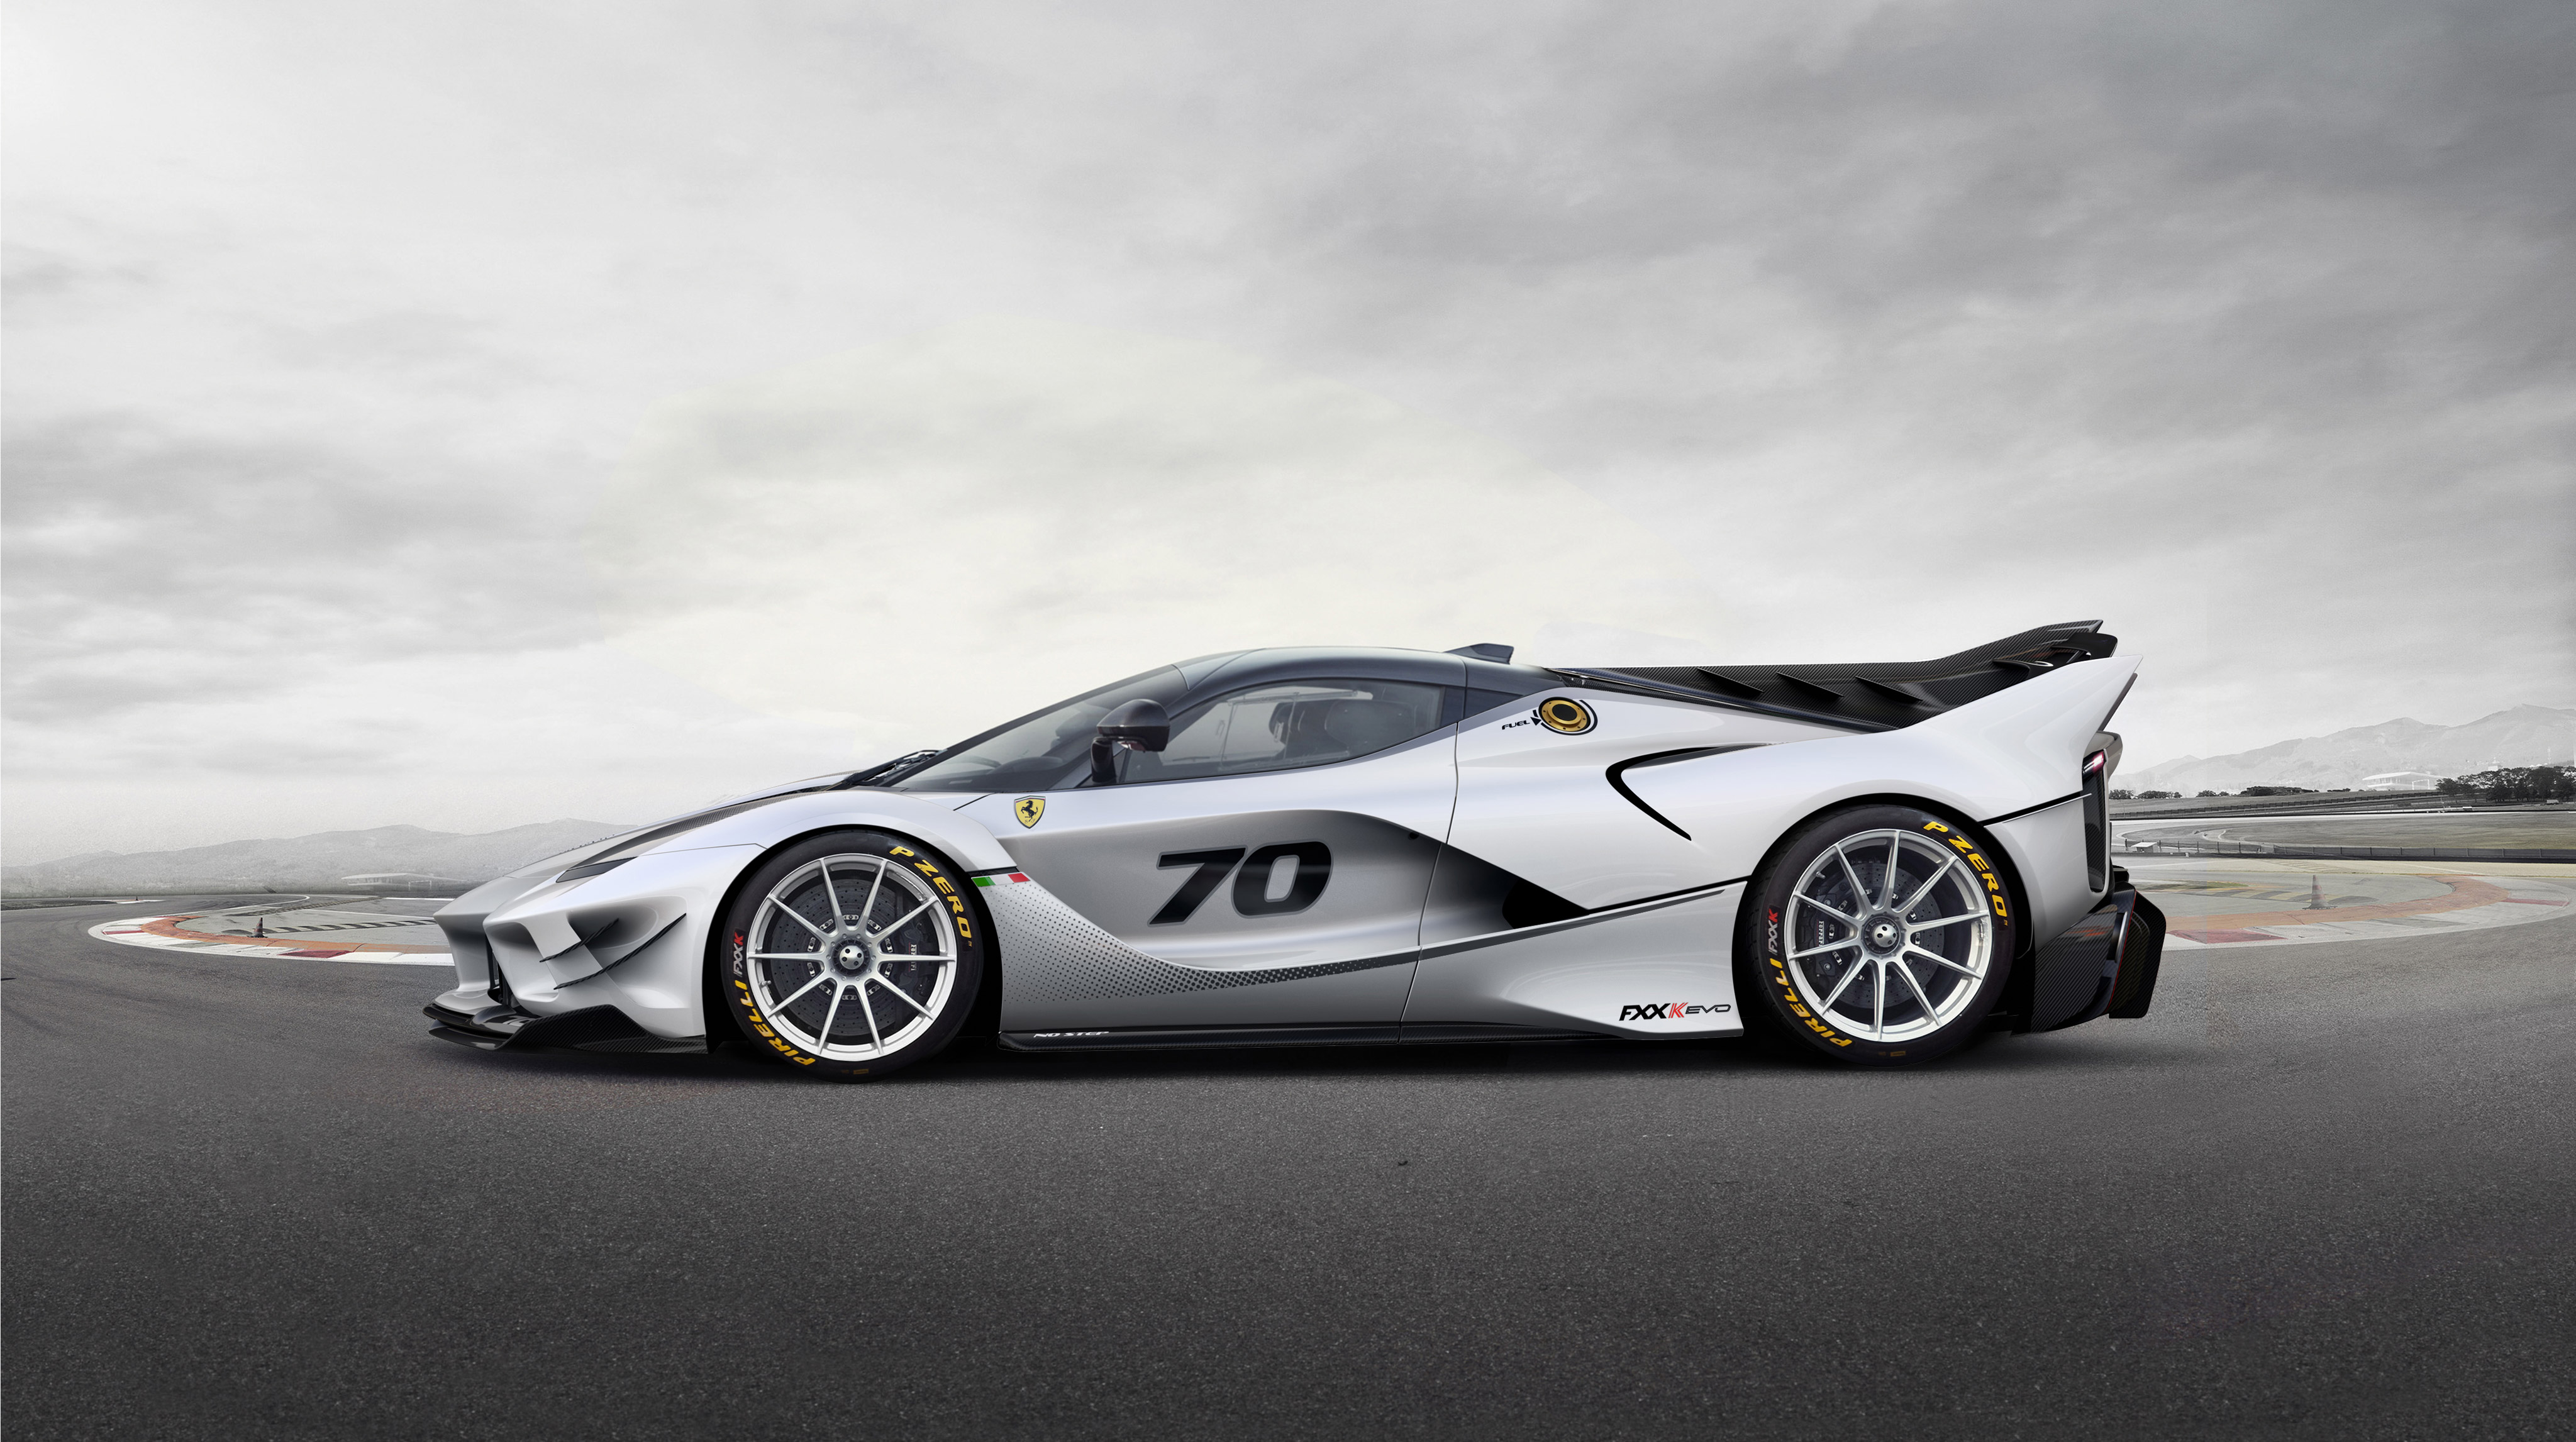 Evo 2017 Logo >> Ferrari FXX K Evo 2018 4k, HD Cars, 4k Wallpapers, Images, Backgrounds, Photos and Pictures